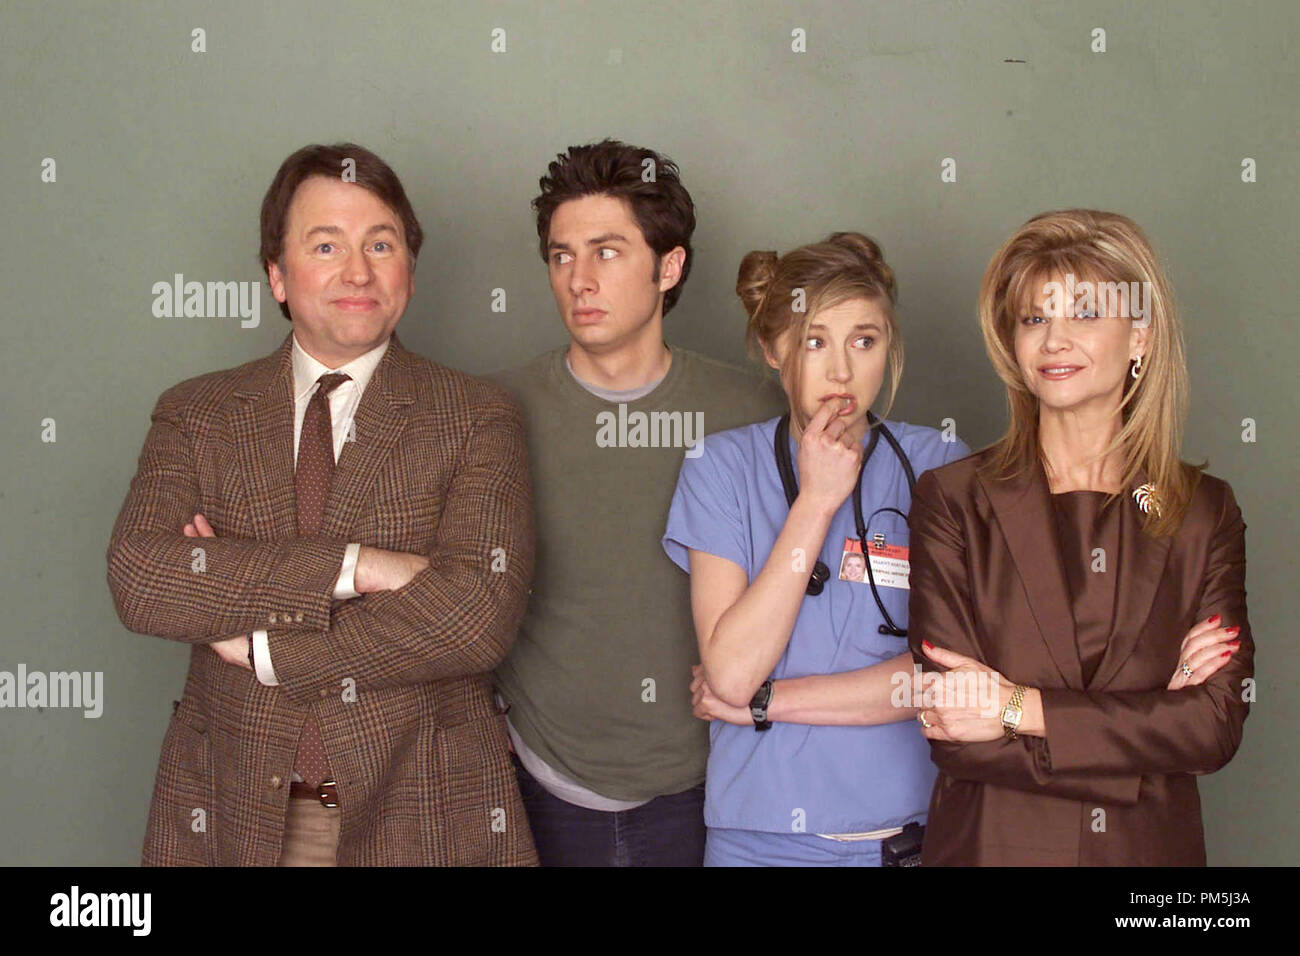 Film Still / Publicity Still from 'Scrubs' Episode: 'My Old Man' John Ritter, Zach Braff, Sarah Chalke, Markie Post April 9, 2002 Photo: Paul Drinkwater File Reference # 30754449THA  For Editorial Use Only -  All Rights Reserved - Stock Image